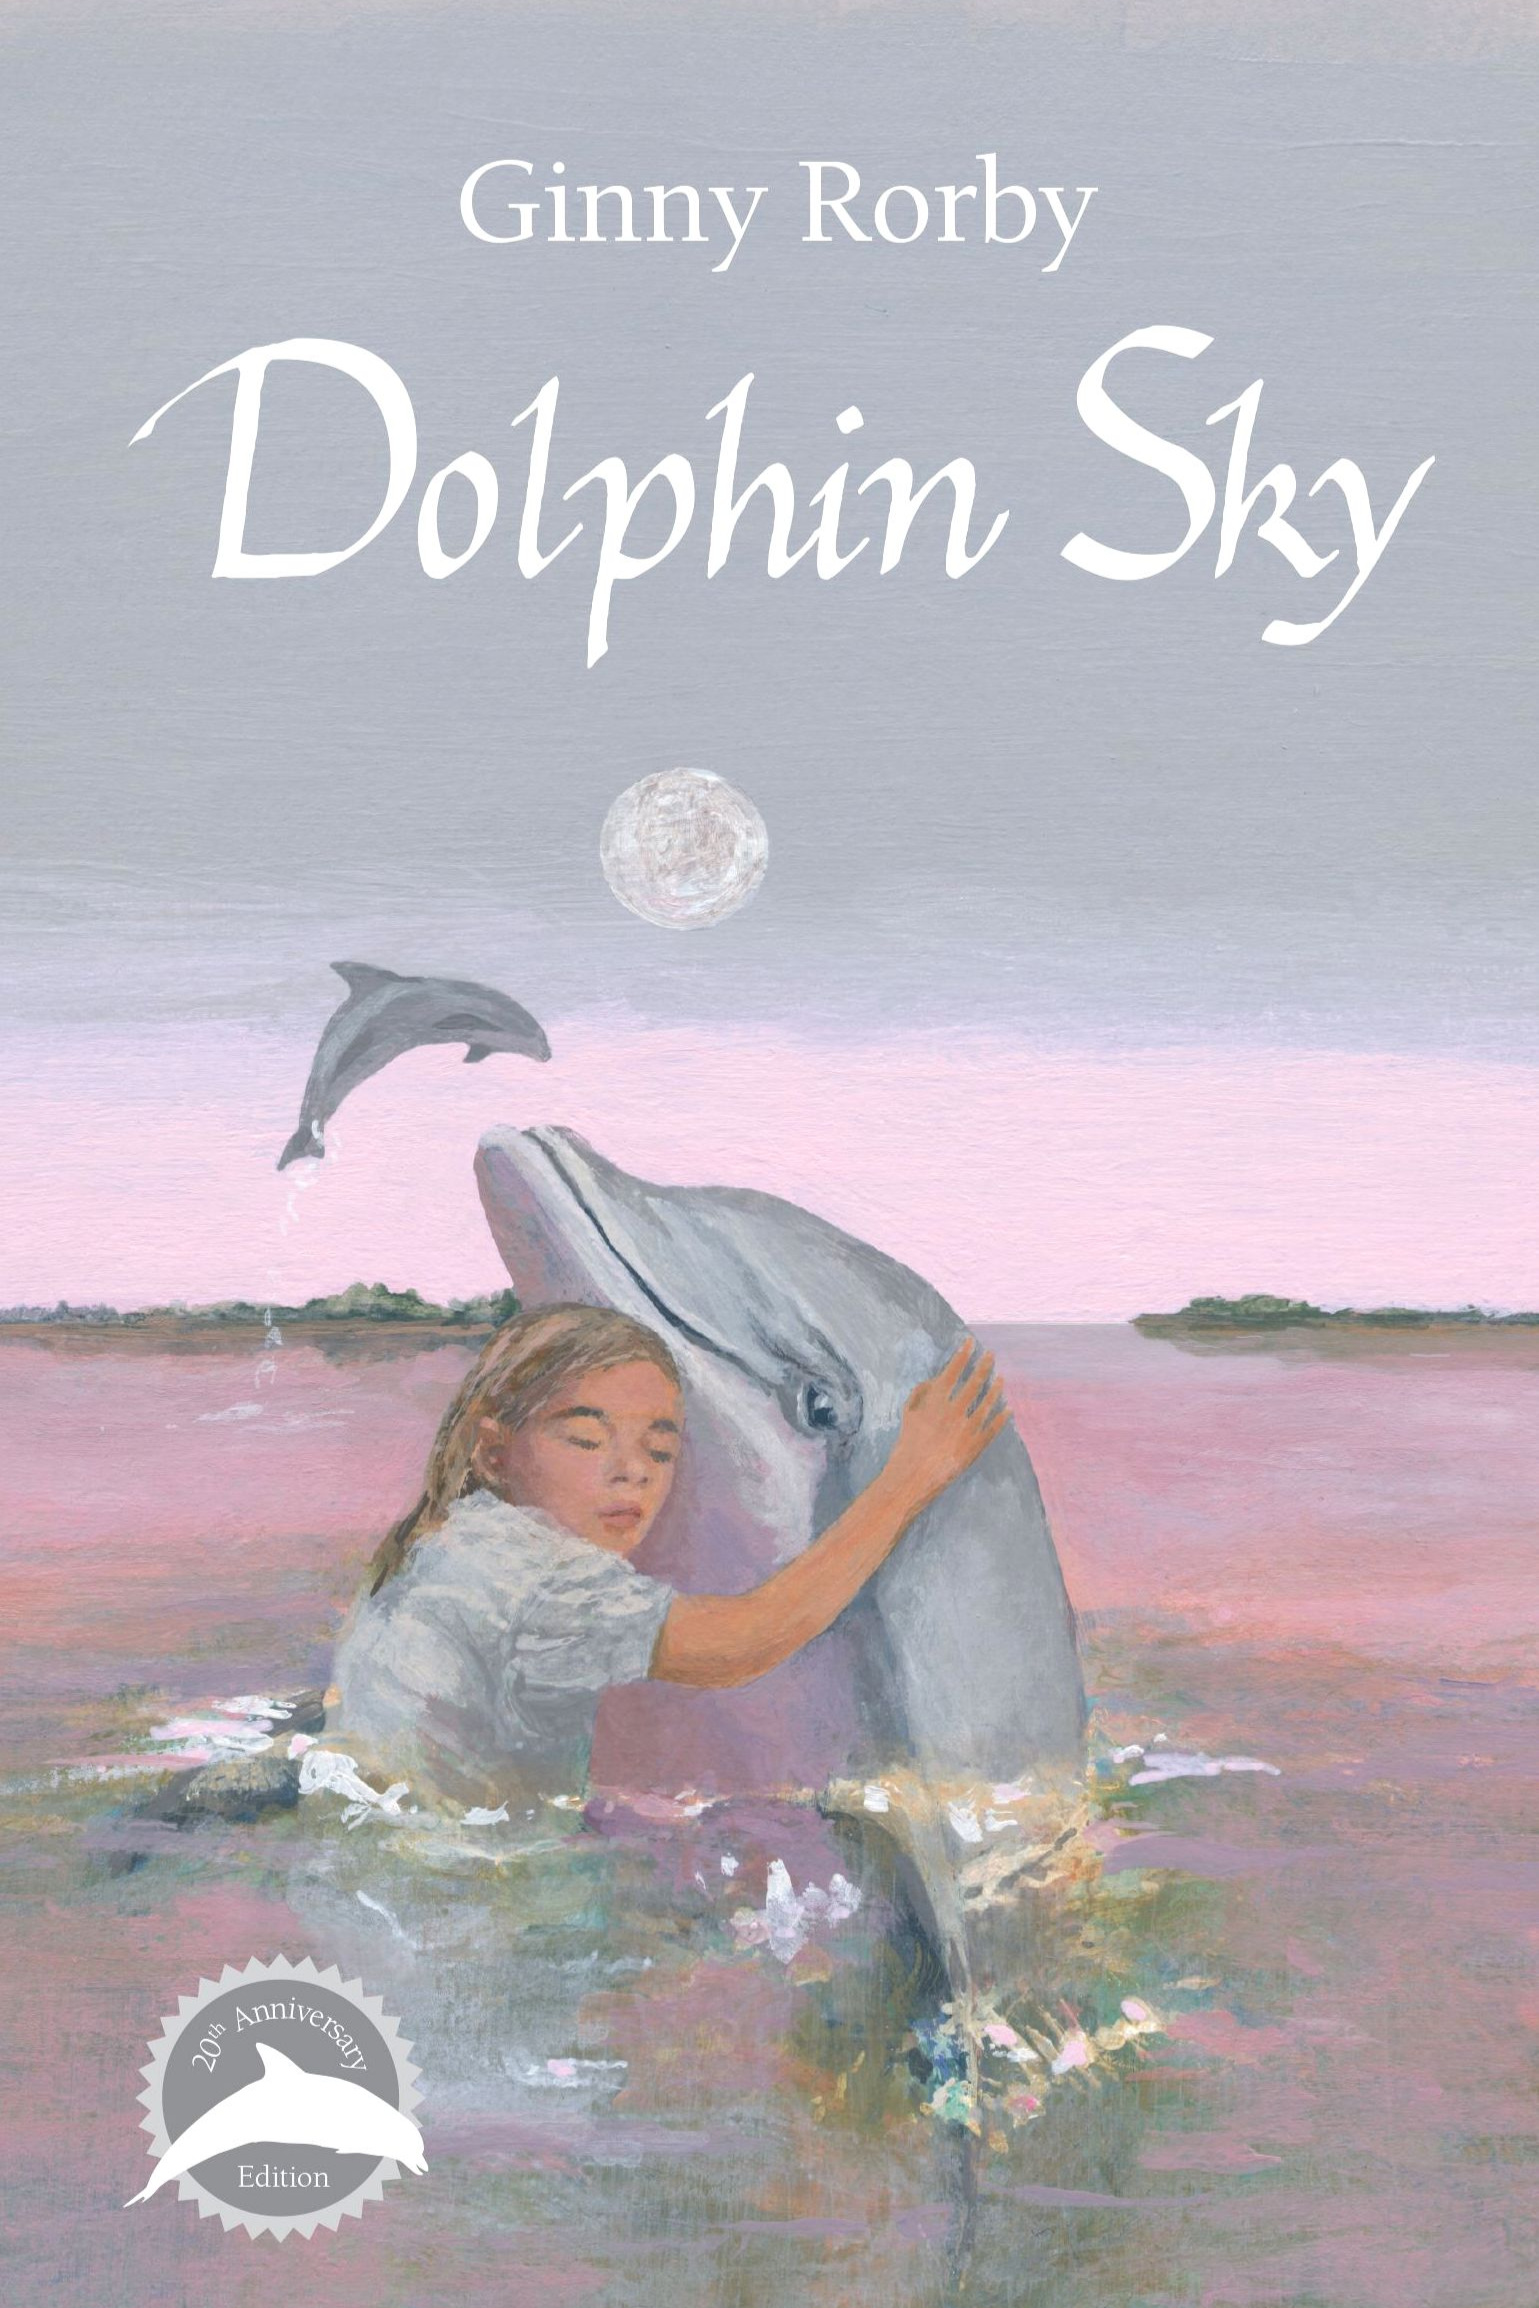 Dolphin Sky   When the captive dolphins she has befriended are threatened, Buddy Martin risks her father's condemnation and the law to save their lives in this powerful story about a dyslexic child…